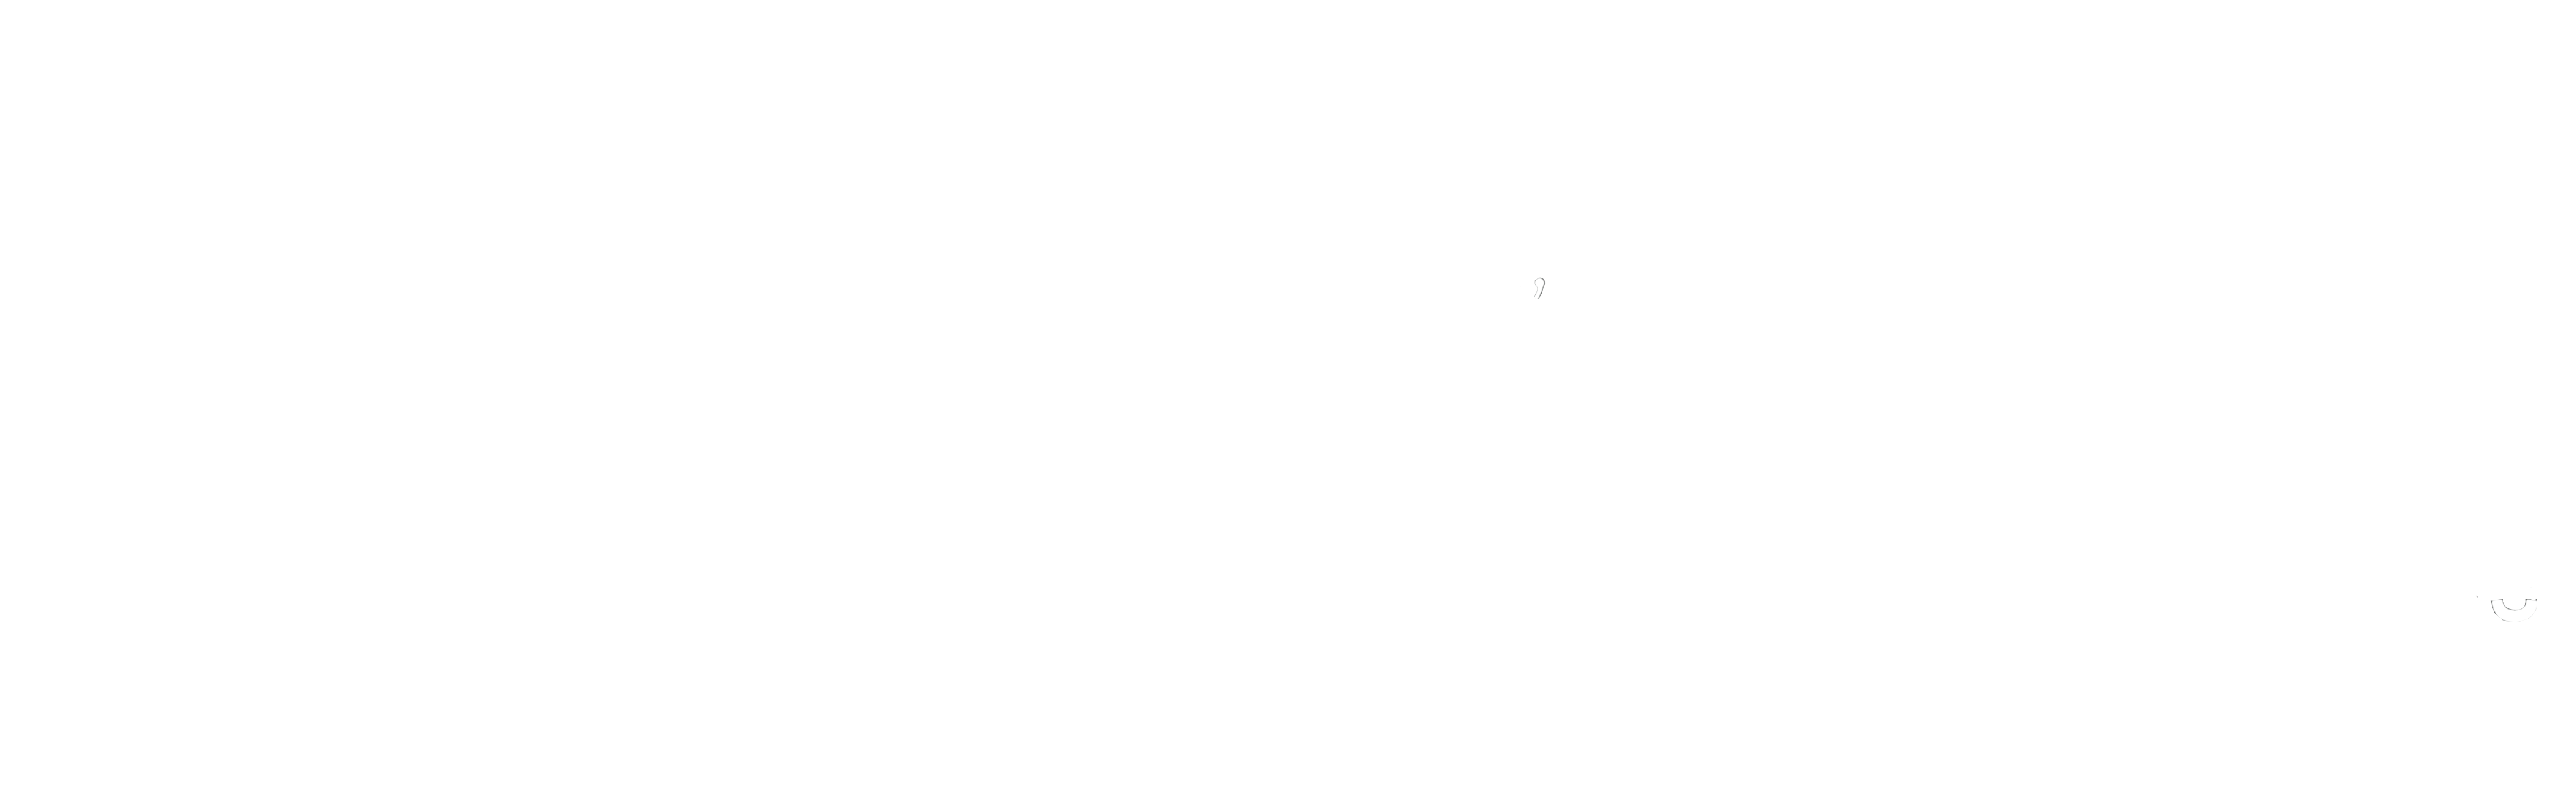 Logo asociatia metodelor alternative de integrare sociala